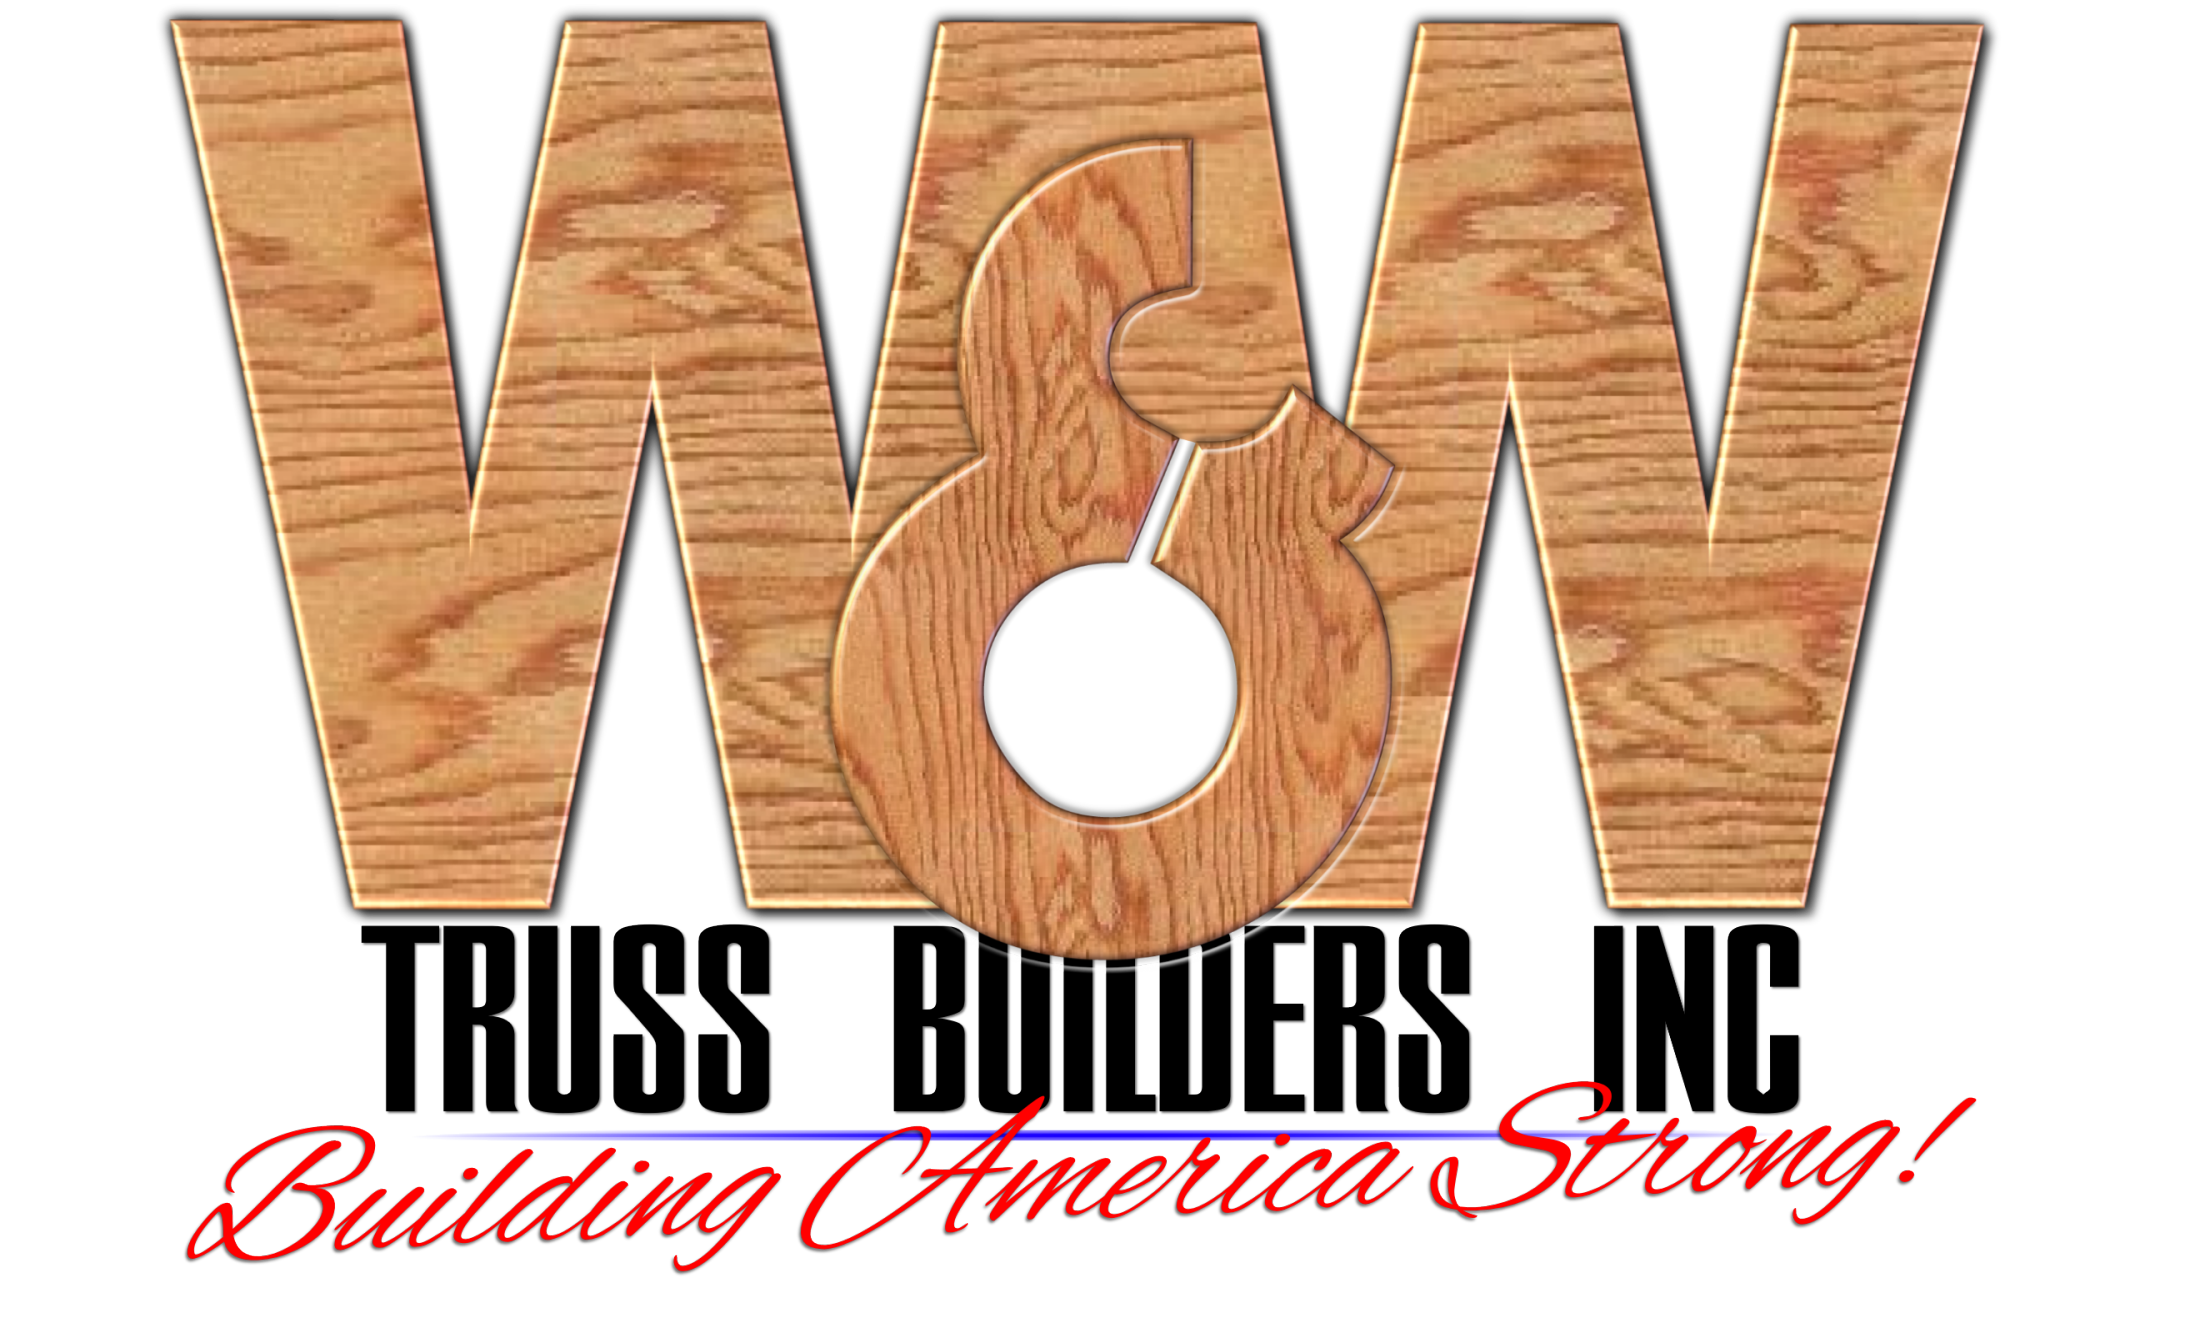 W & W Truss Builders, Inc. in Williamston, NC. Roof & floor trusses, I-joist & LVL beams, roofing metal, pressure-treated posts, truss hardware, hurricane clips, hangers & stabilizers.